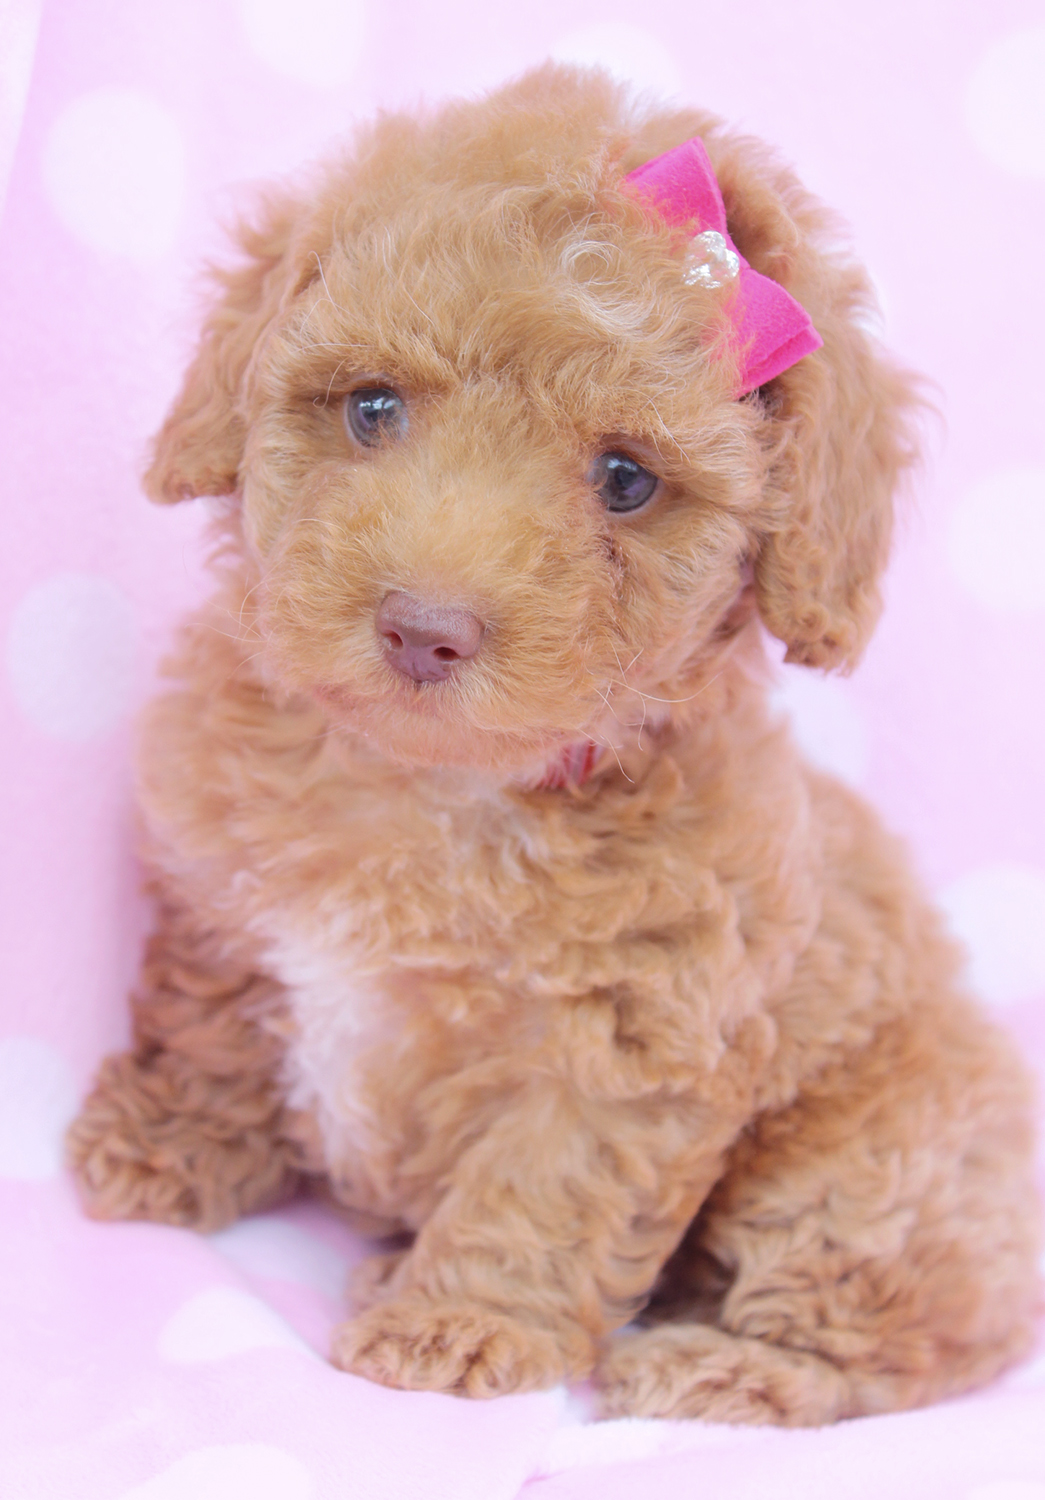 Miniature-Poodle-Puppies-Picture-Florida - Dog Breeders Guide